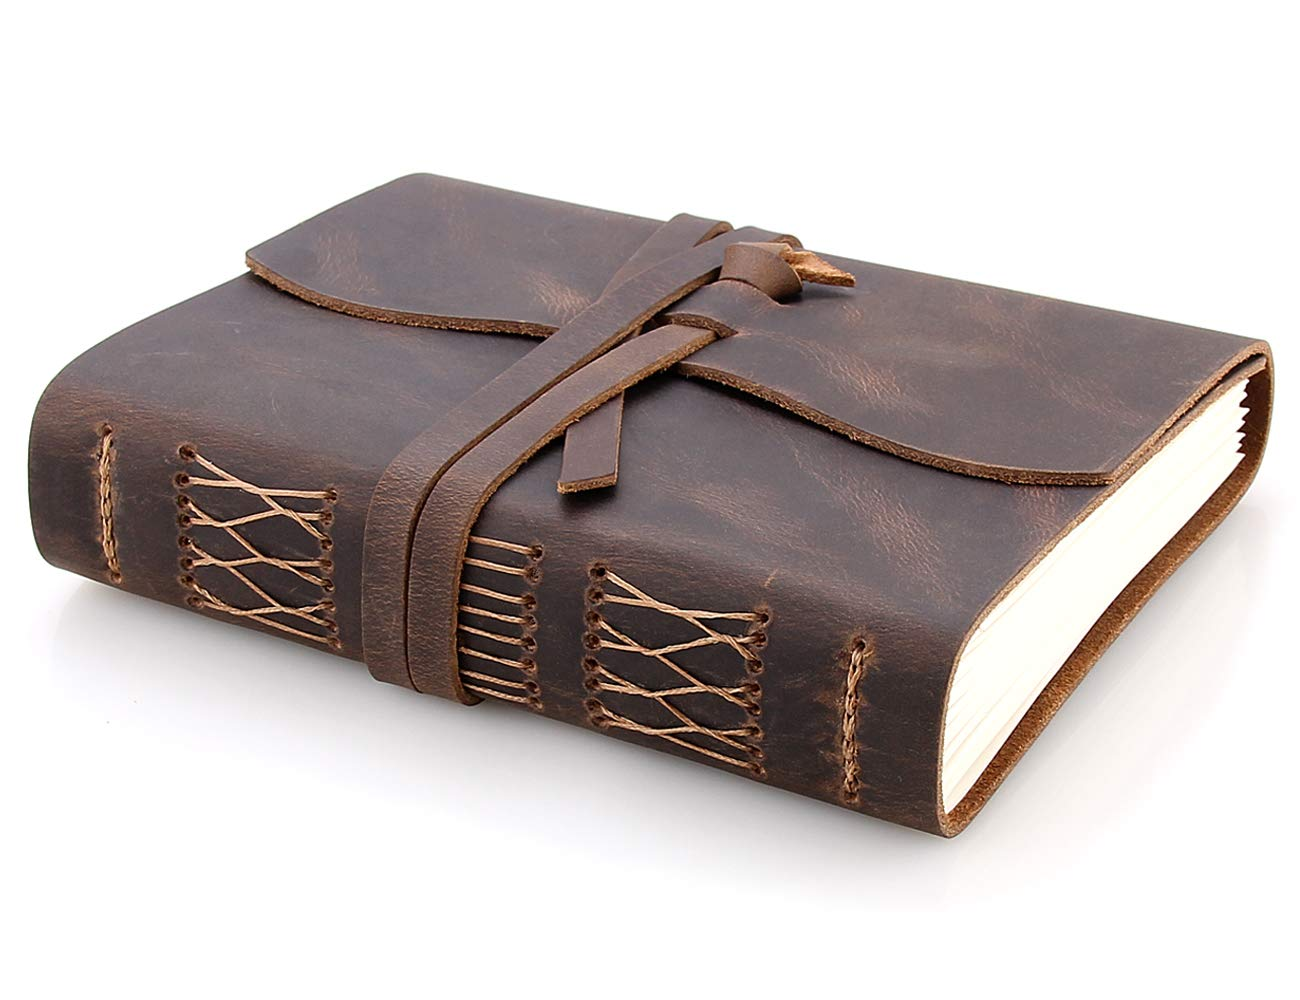 Leather Journal Travel Notebook, Handmade Vintage Leather Bound Writing Notebook for Men & Women, Unlined Travel Journal to Write in 320 Pages Medium Size 7''x5'' Art Sketchbook, Travel Diary